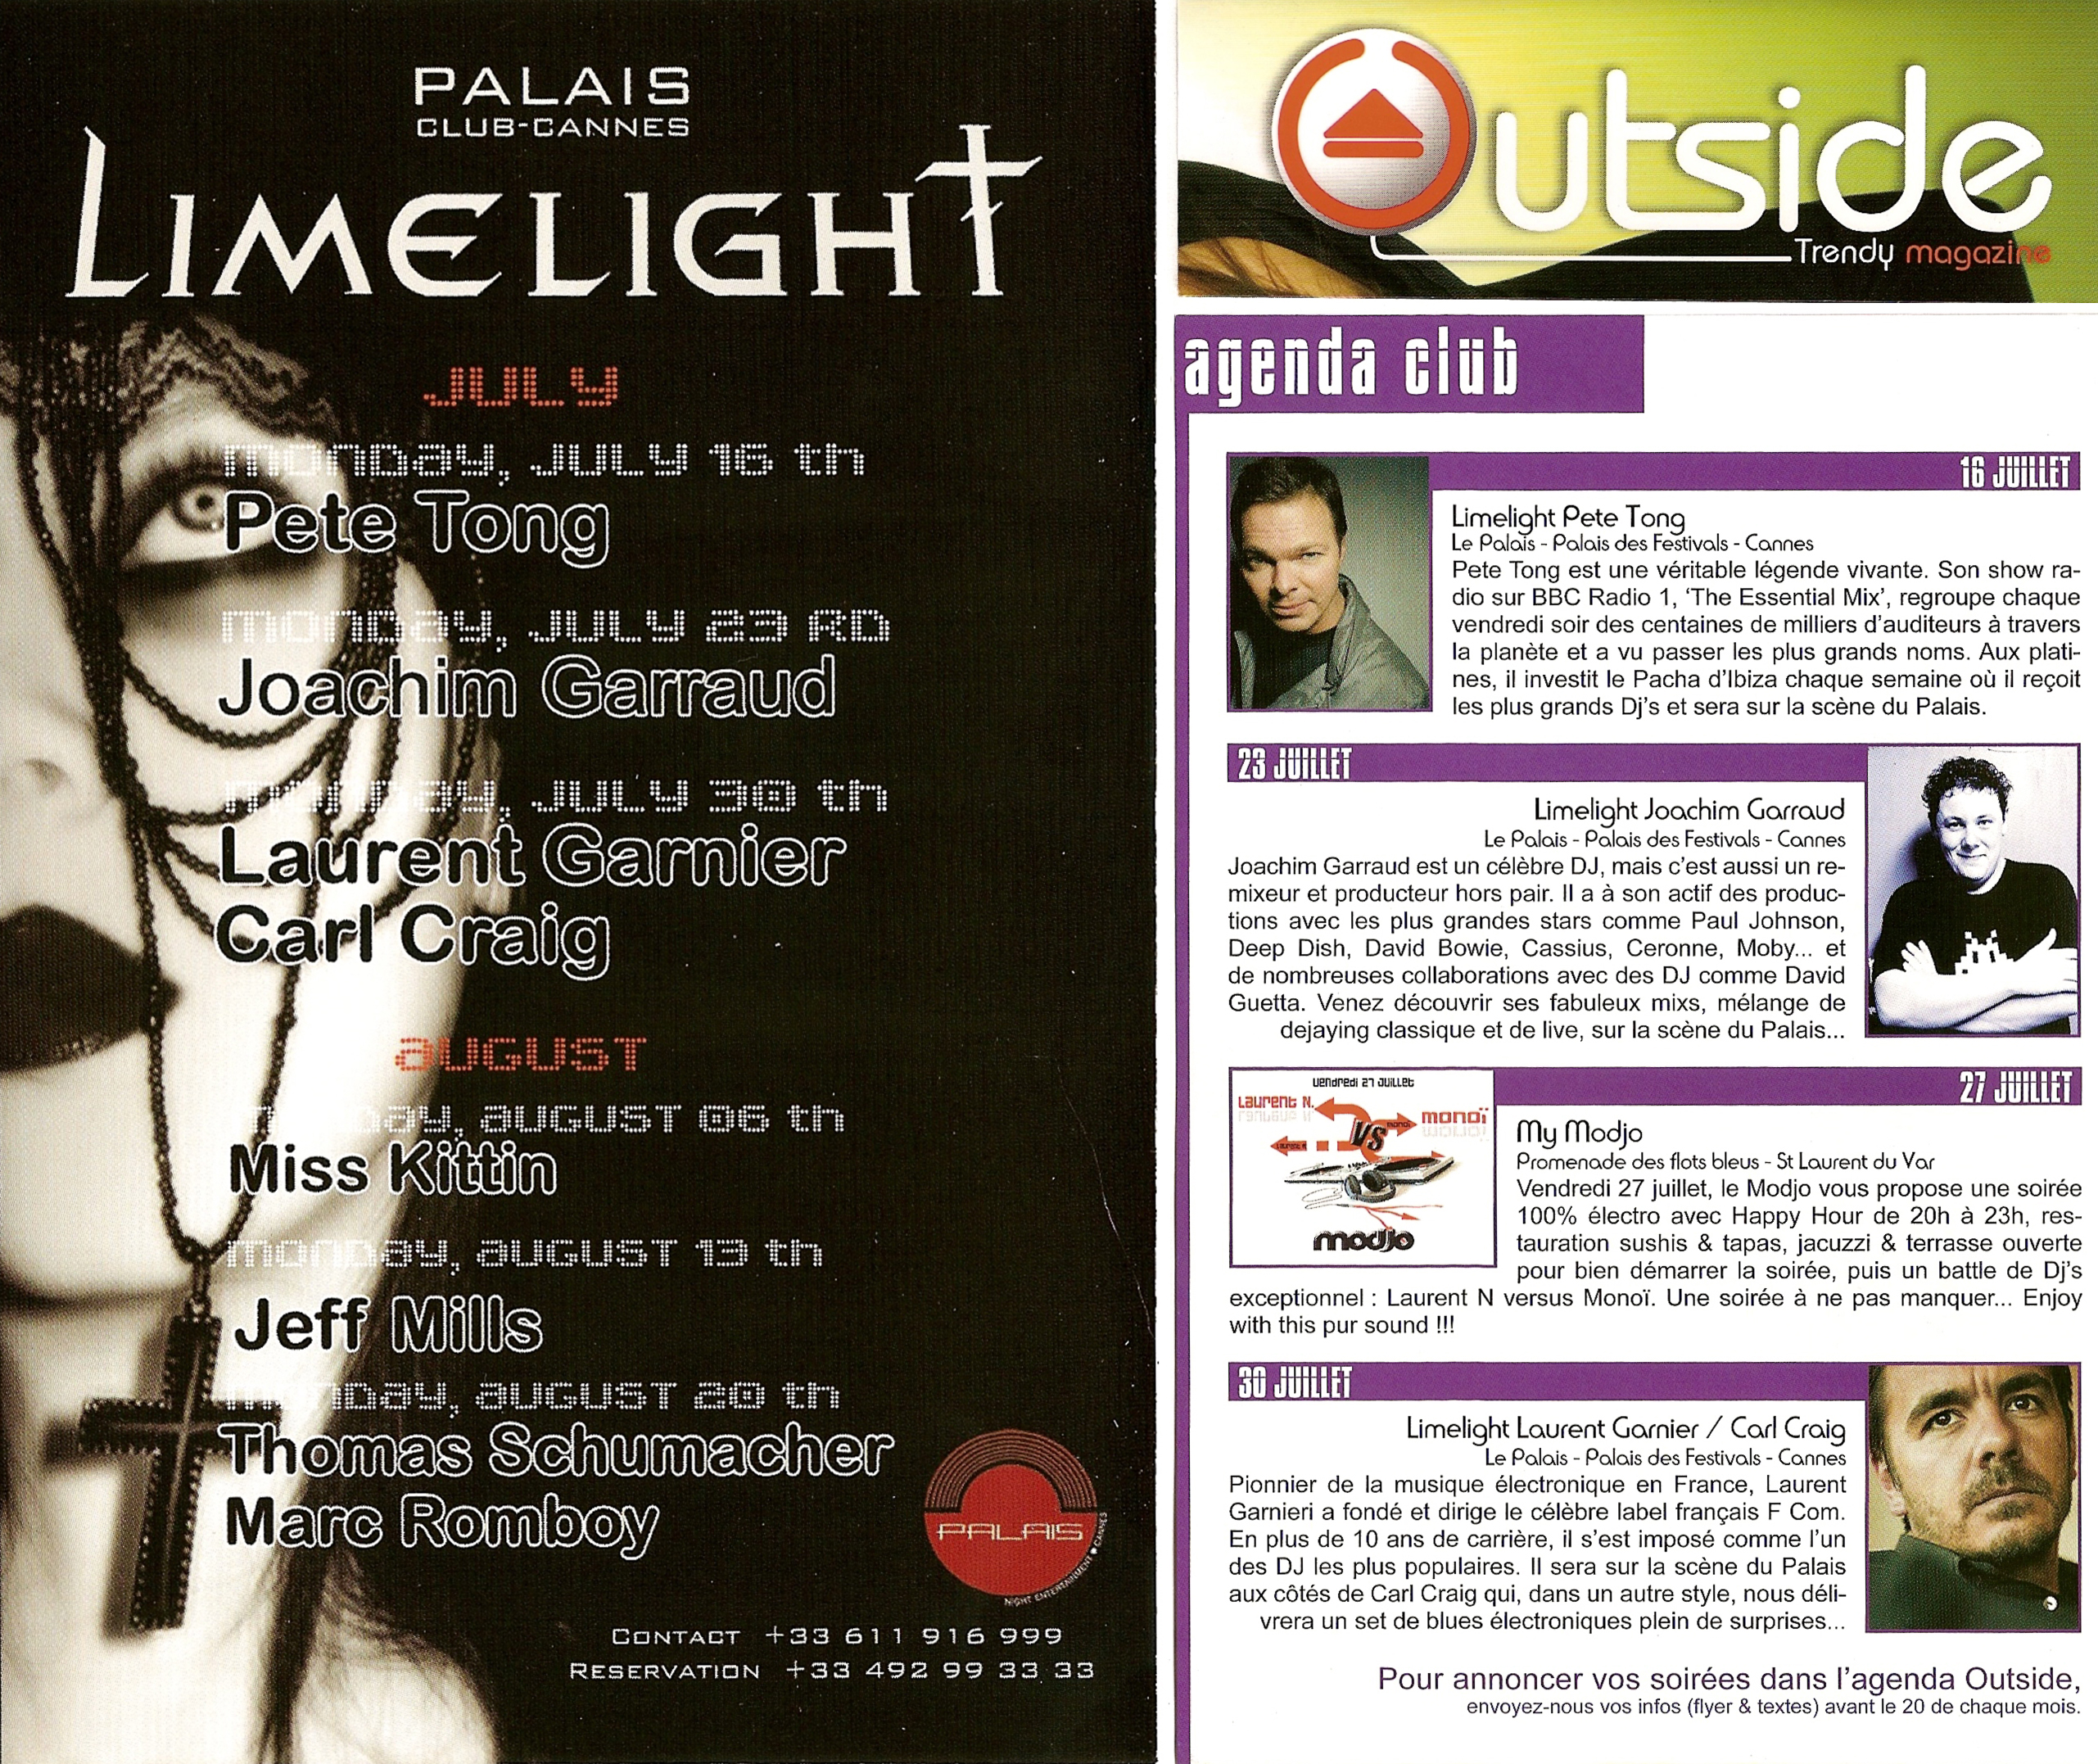 2007 OUTSIDE PALAIS LIMELIGHT